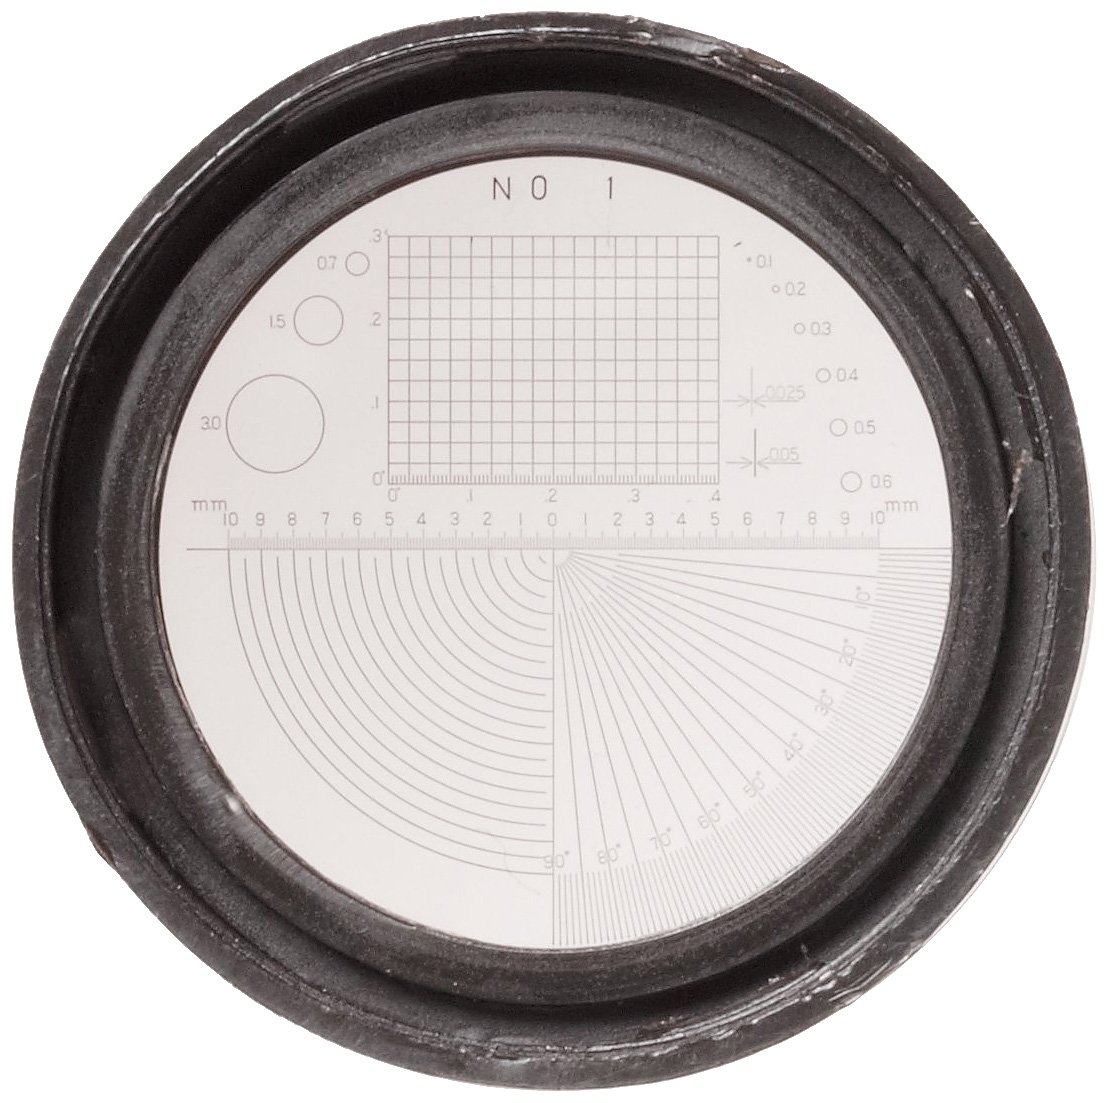 8x Magnification Mitutoyo 183-902 Pocket Comparator with Six Reticles